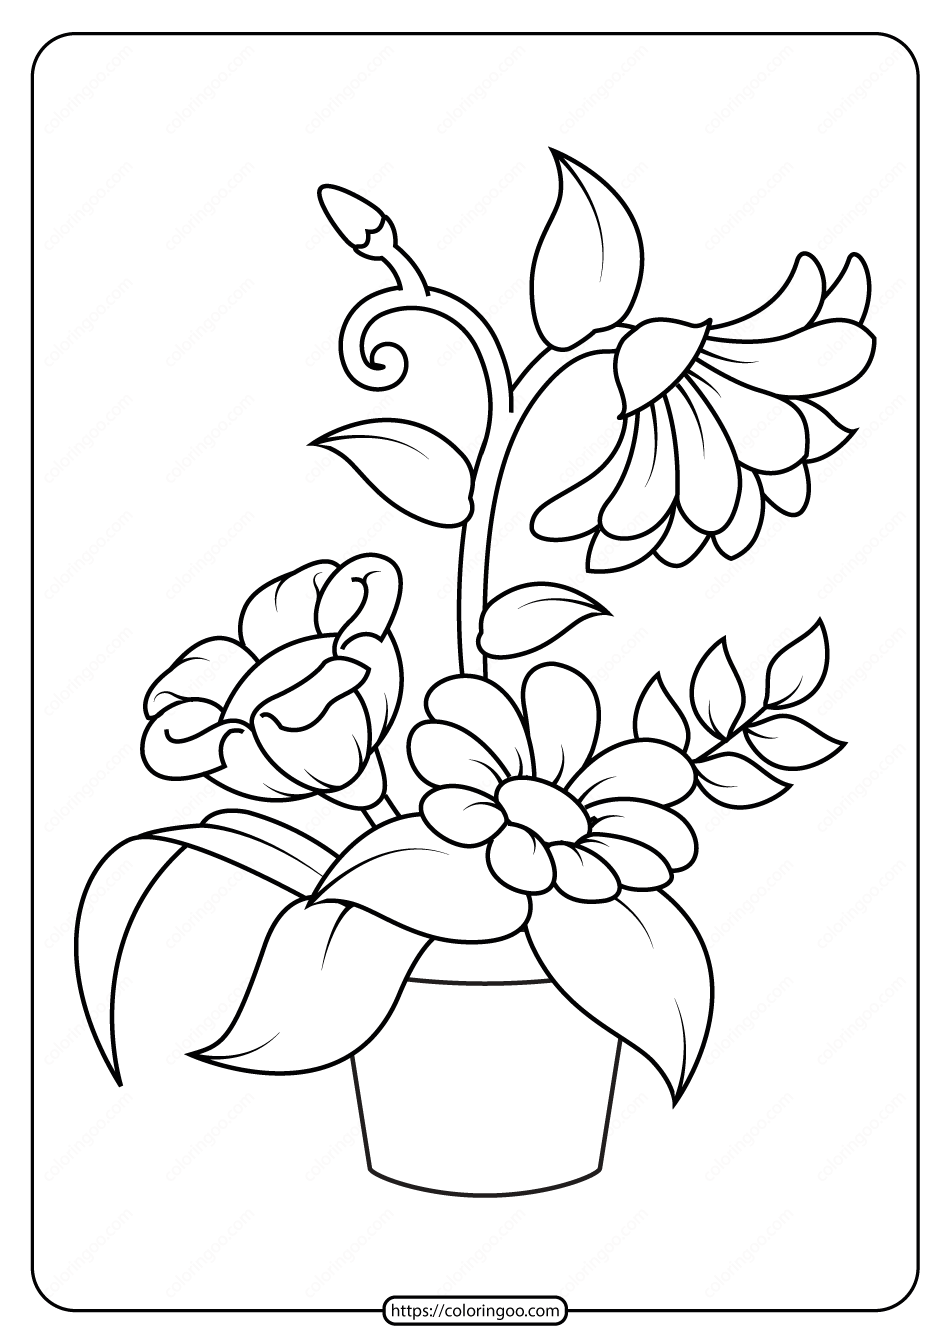 flower pattern to color adult coloring pages patterns flowers at getdrawings pattern color to flower